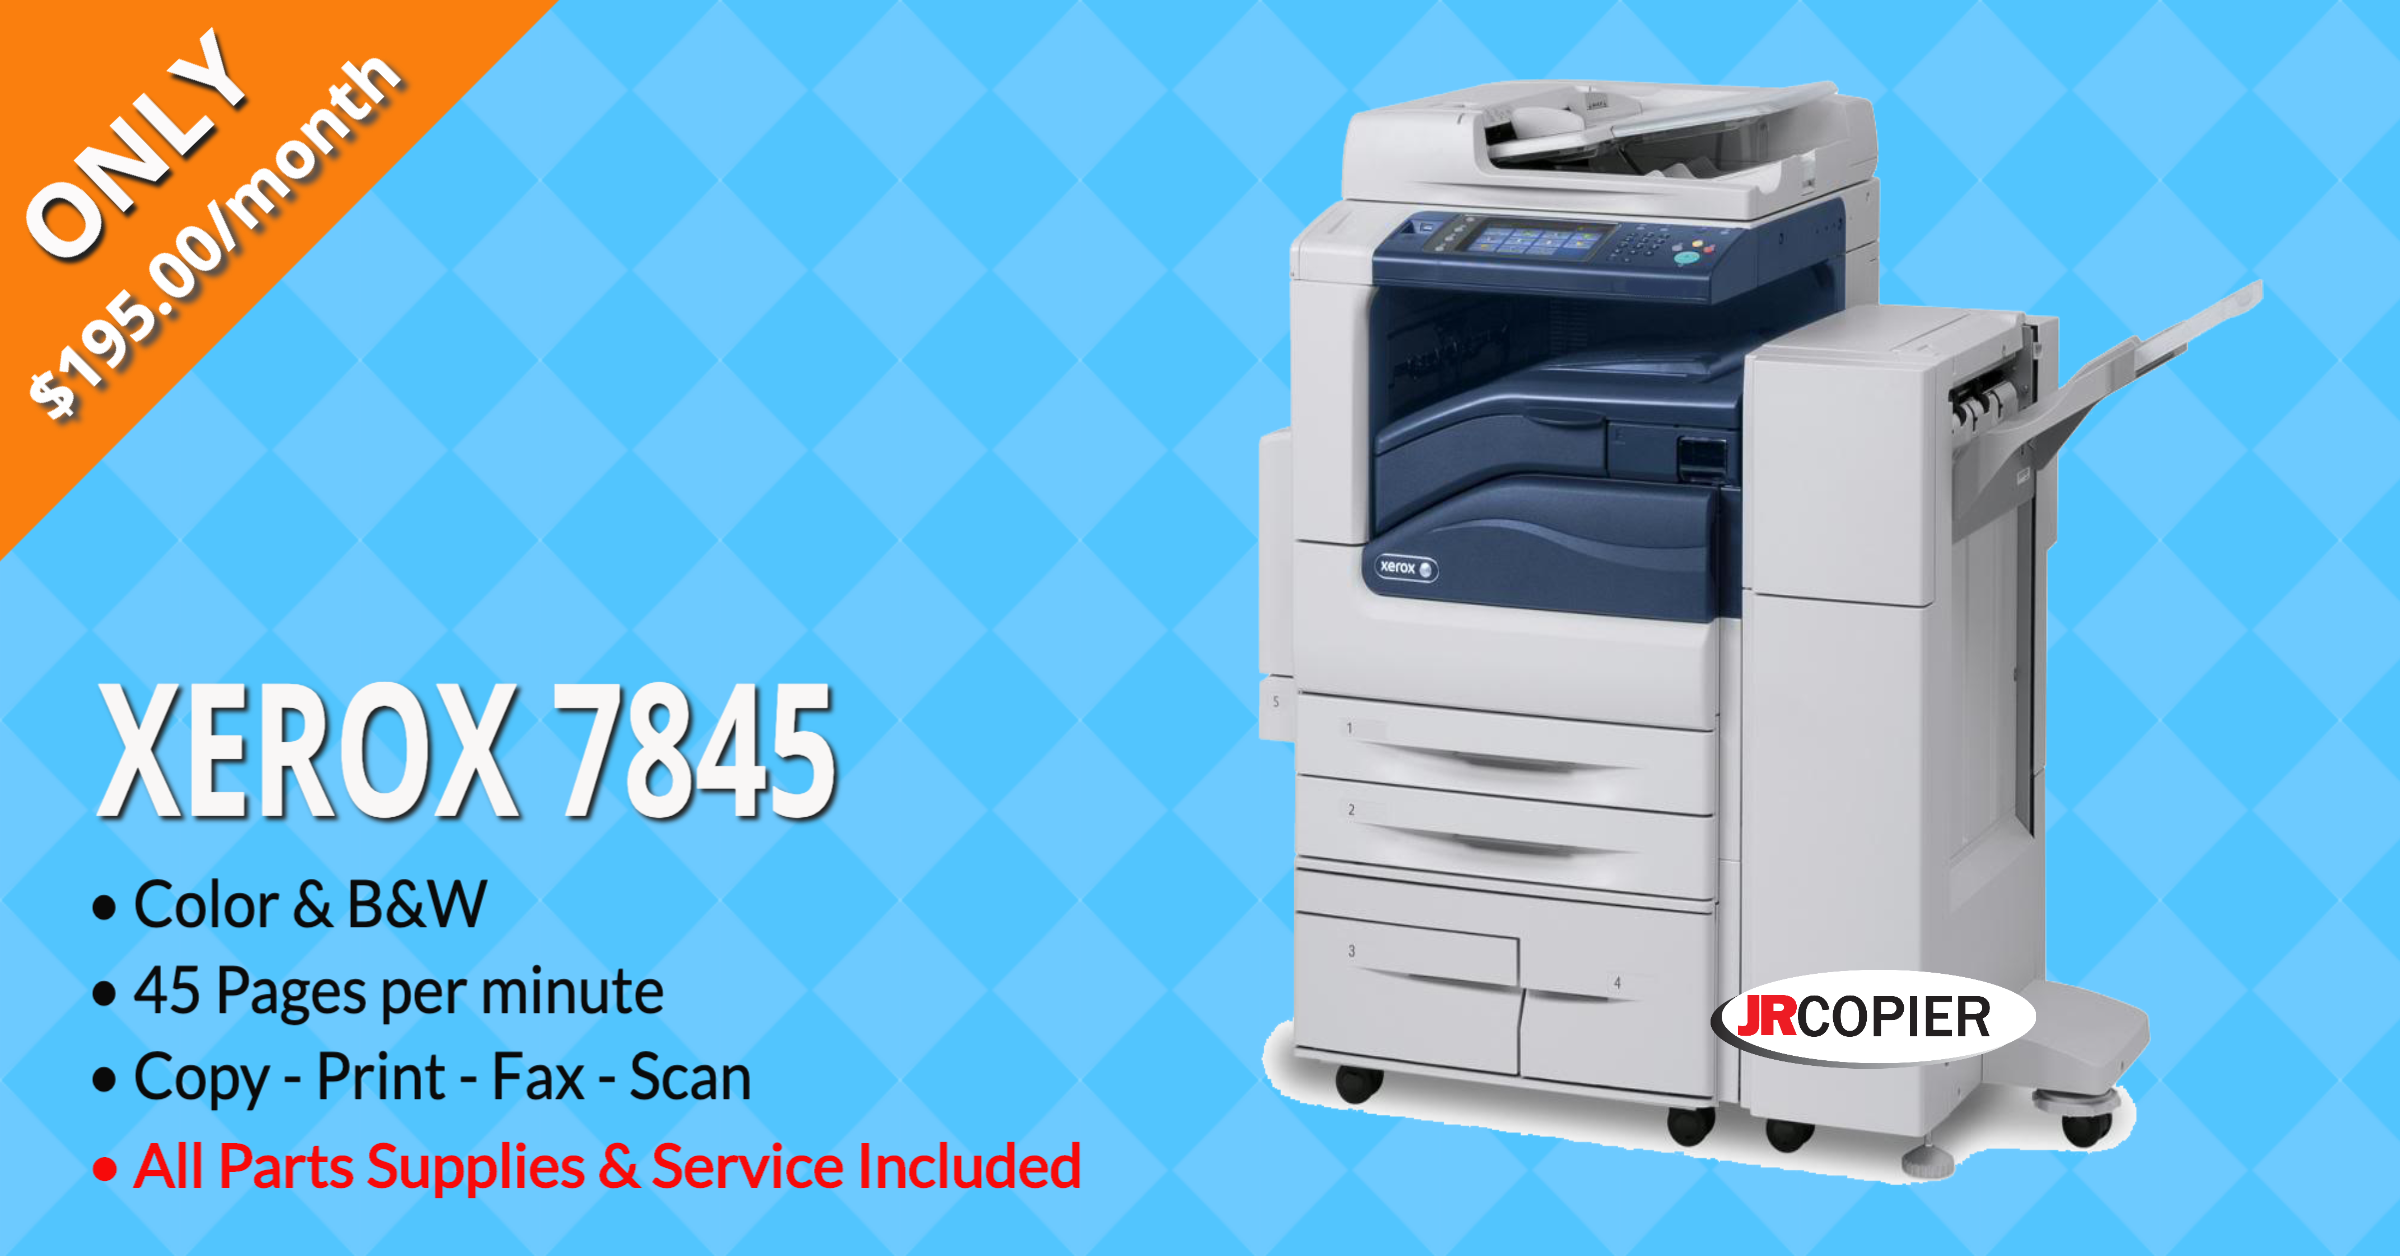 Copy Machine Sales 07203, 07204